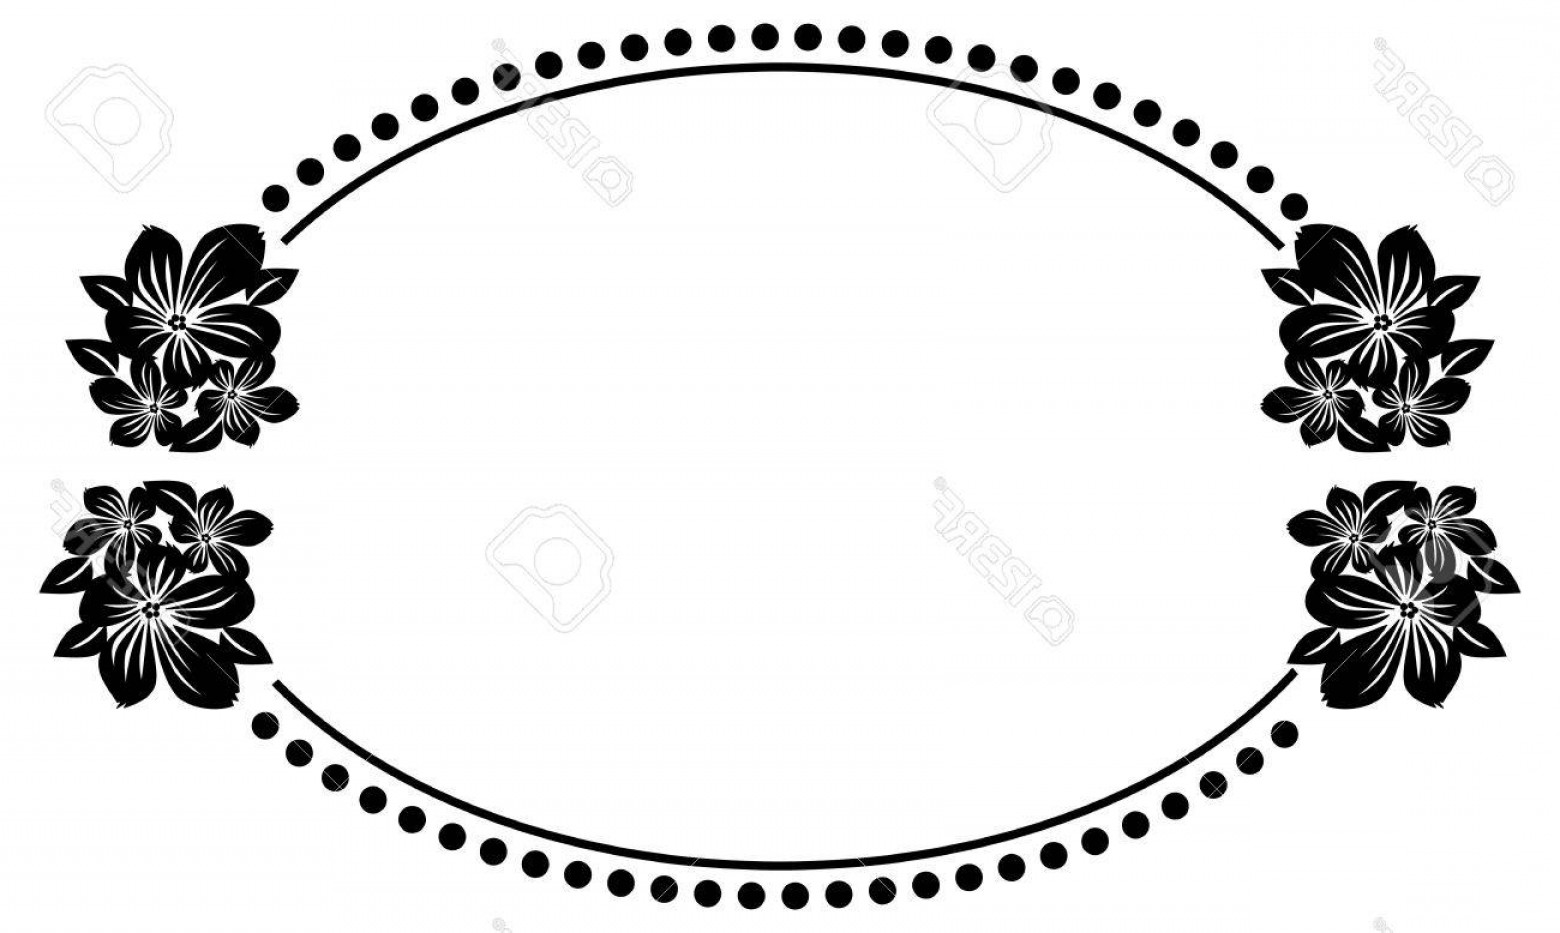 1560x933 Photostock Vector Black And White Oval Frame With Abstract Flowers